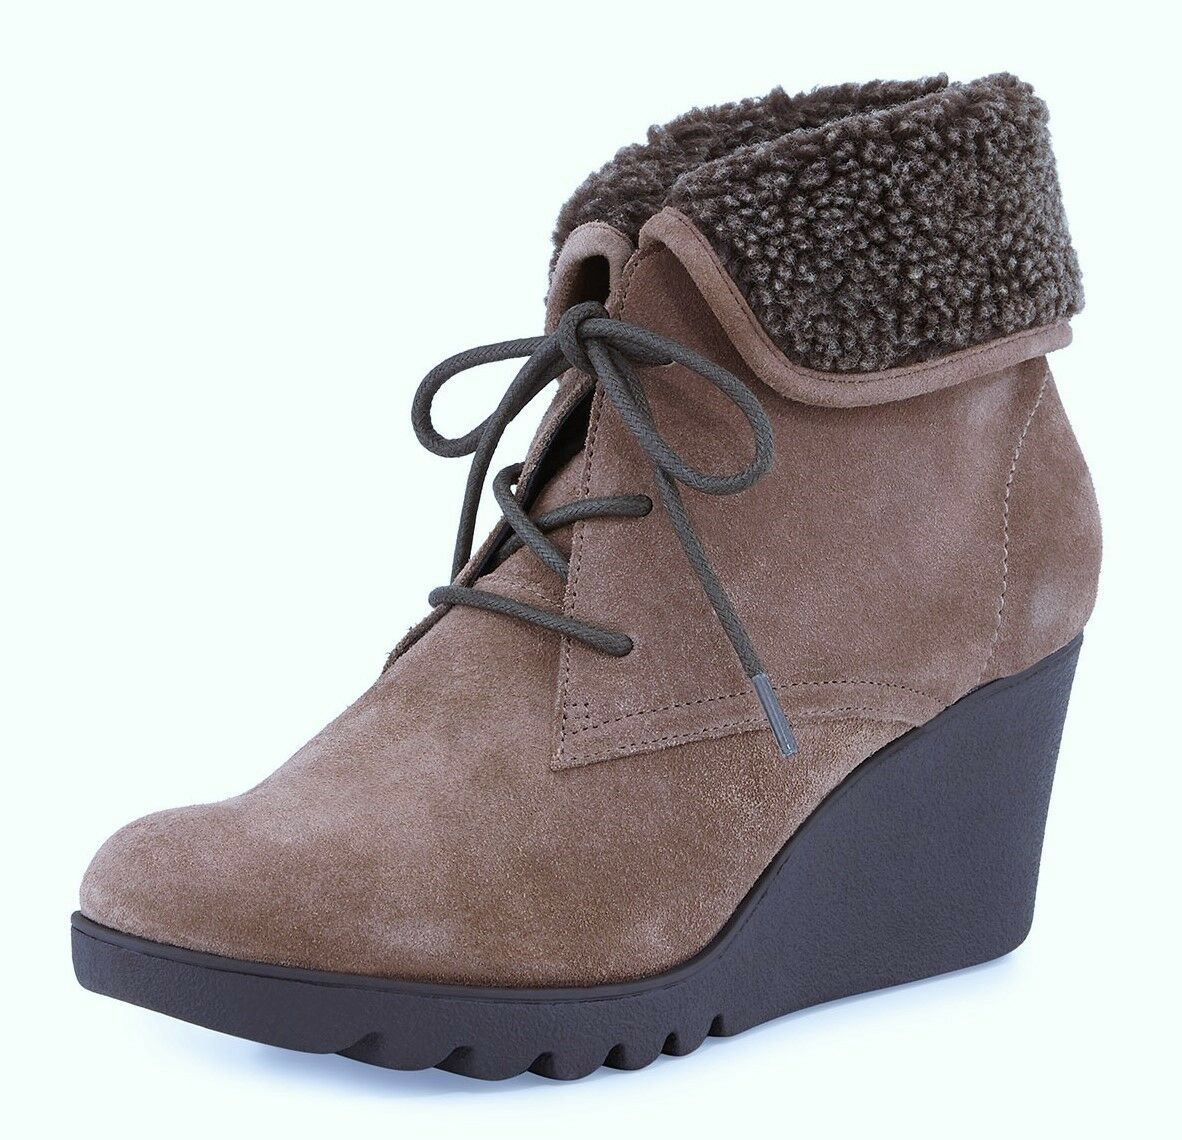 Donald J Pliner Maxxi Faux-Fur Suede Ankle Boot Bootie Taupe New 8/8.5/9 $258